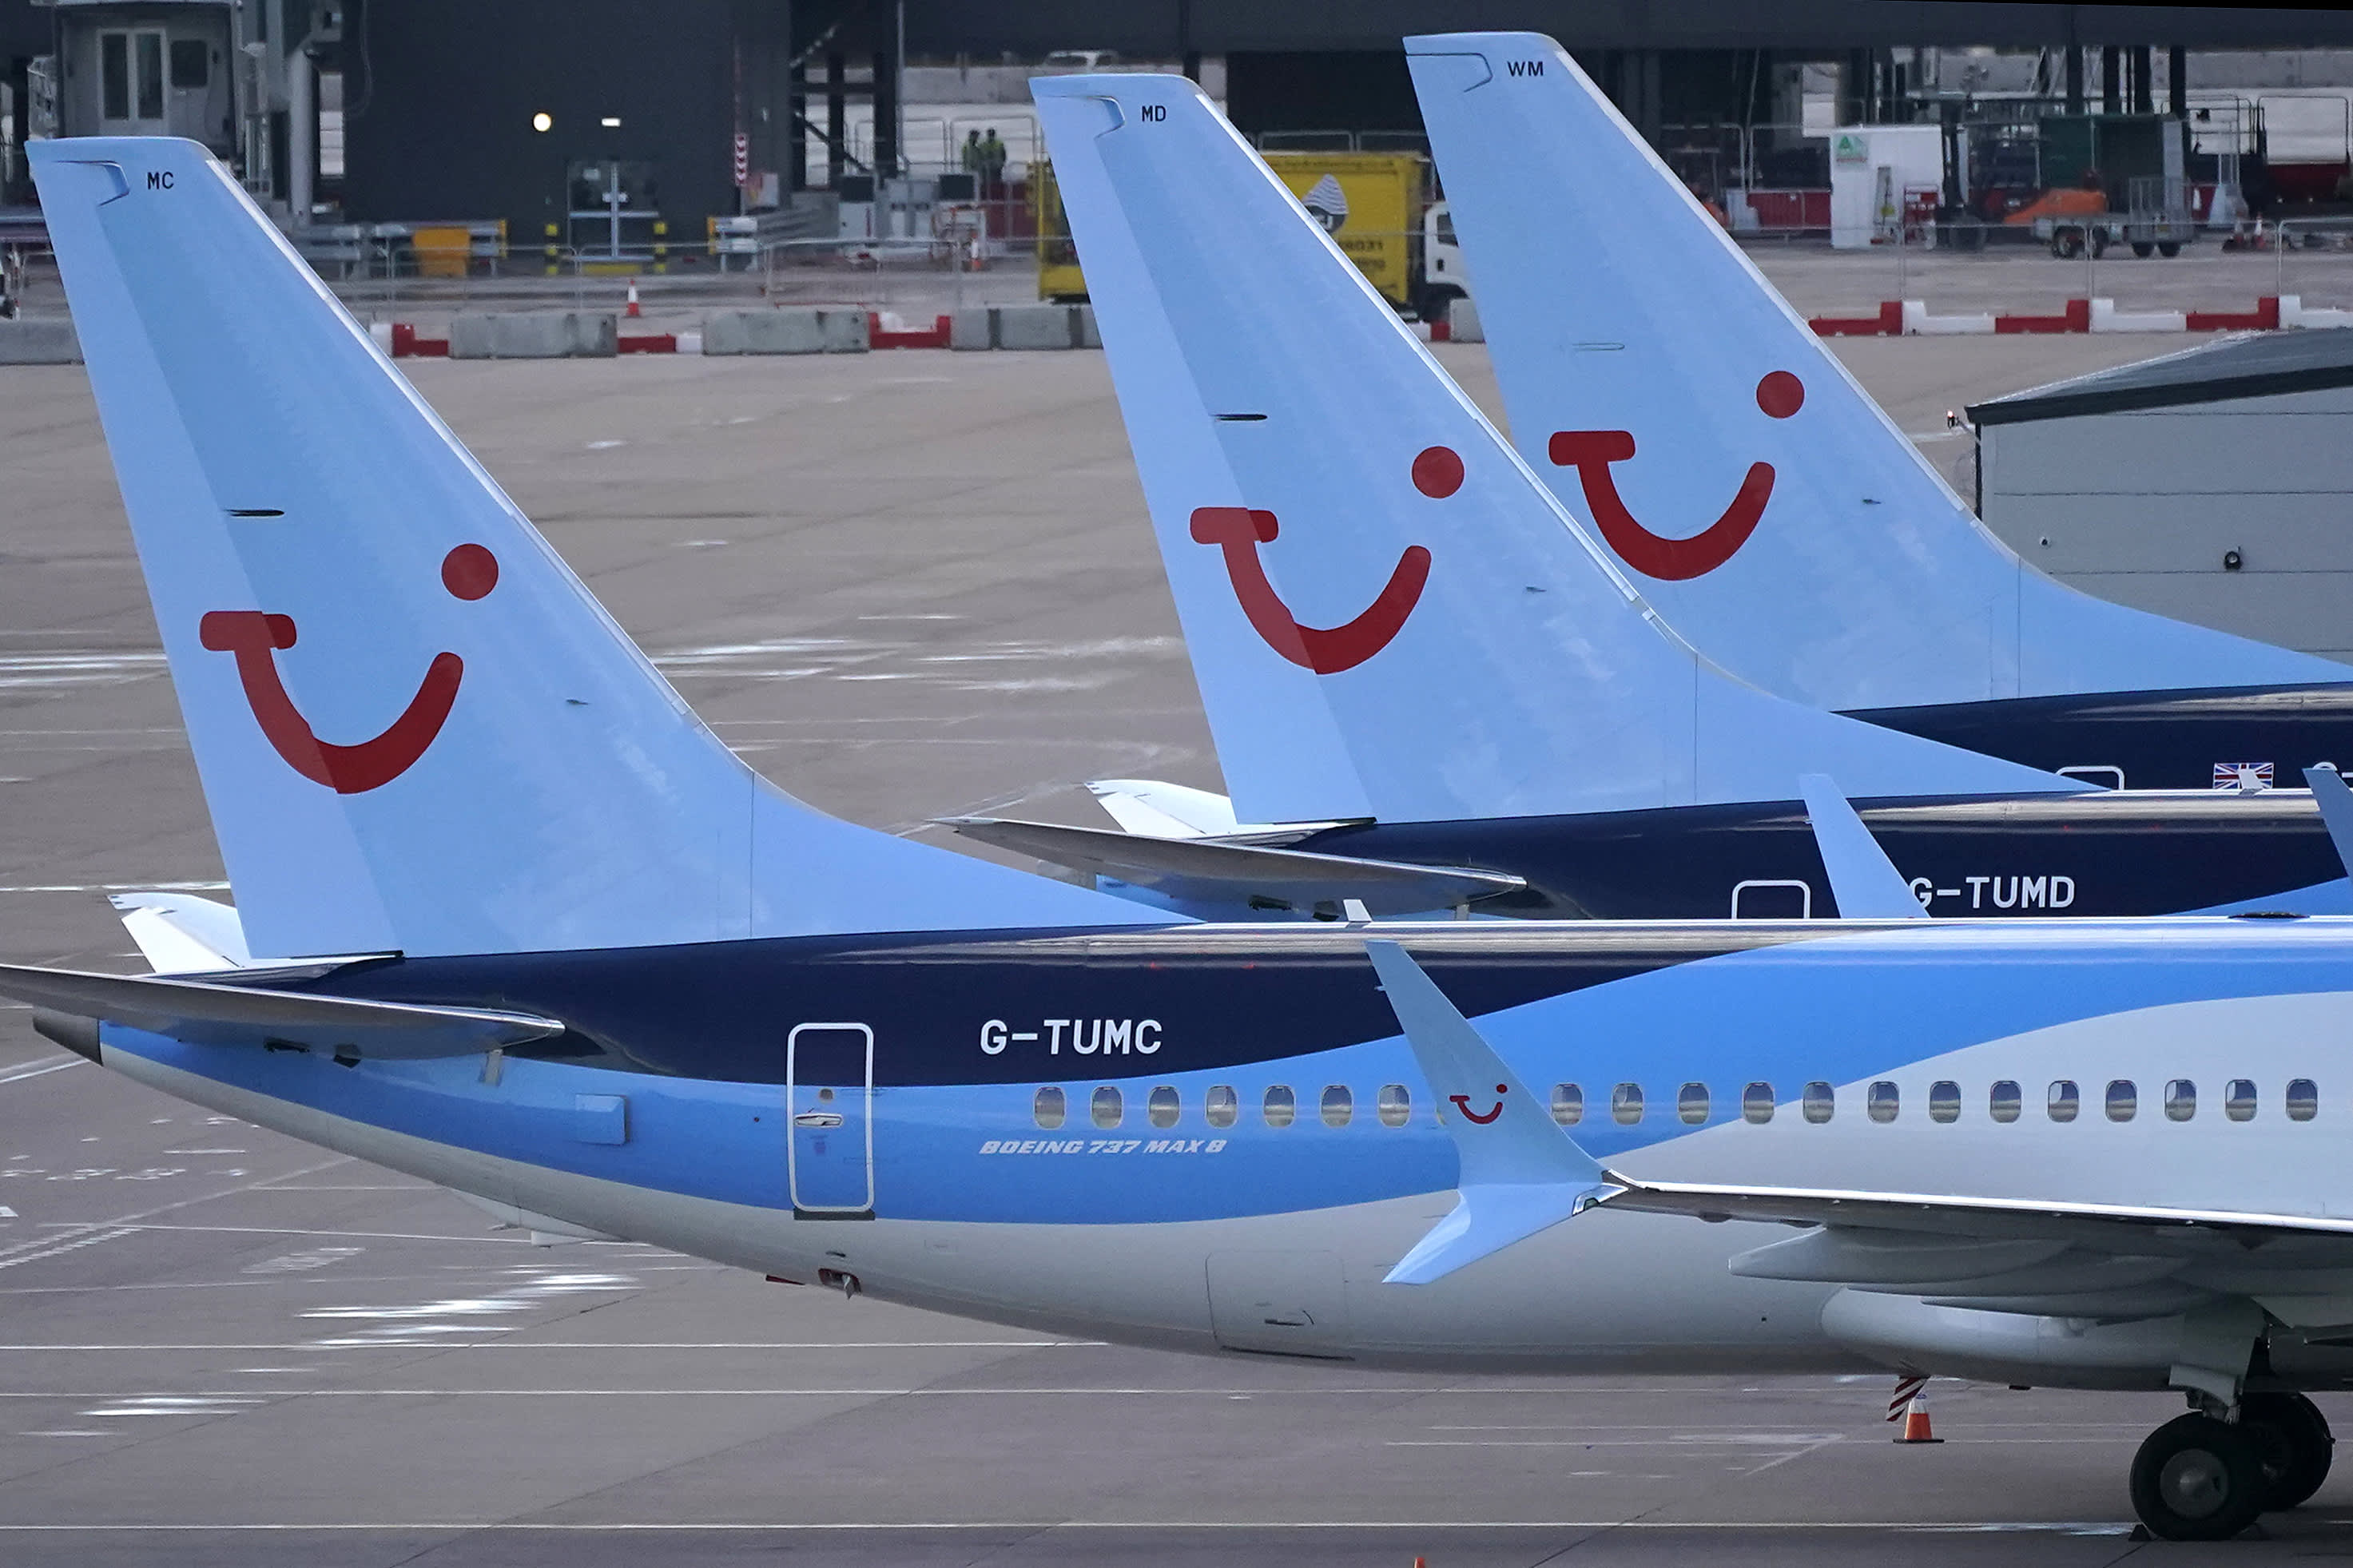 EU regulator expects to clear Boeing 737 MAX in January at earliest